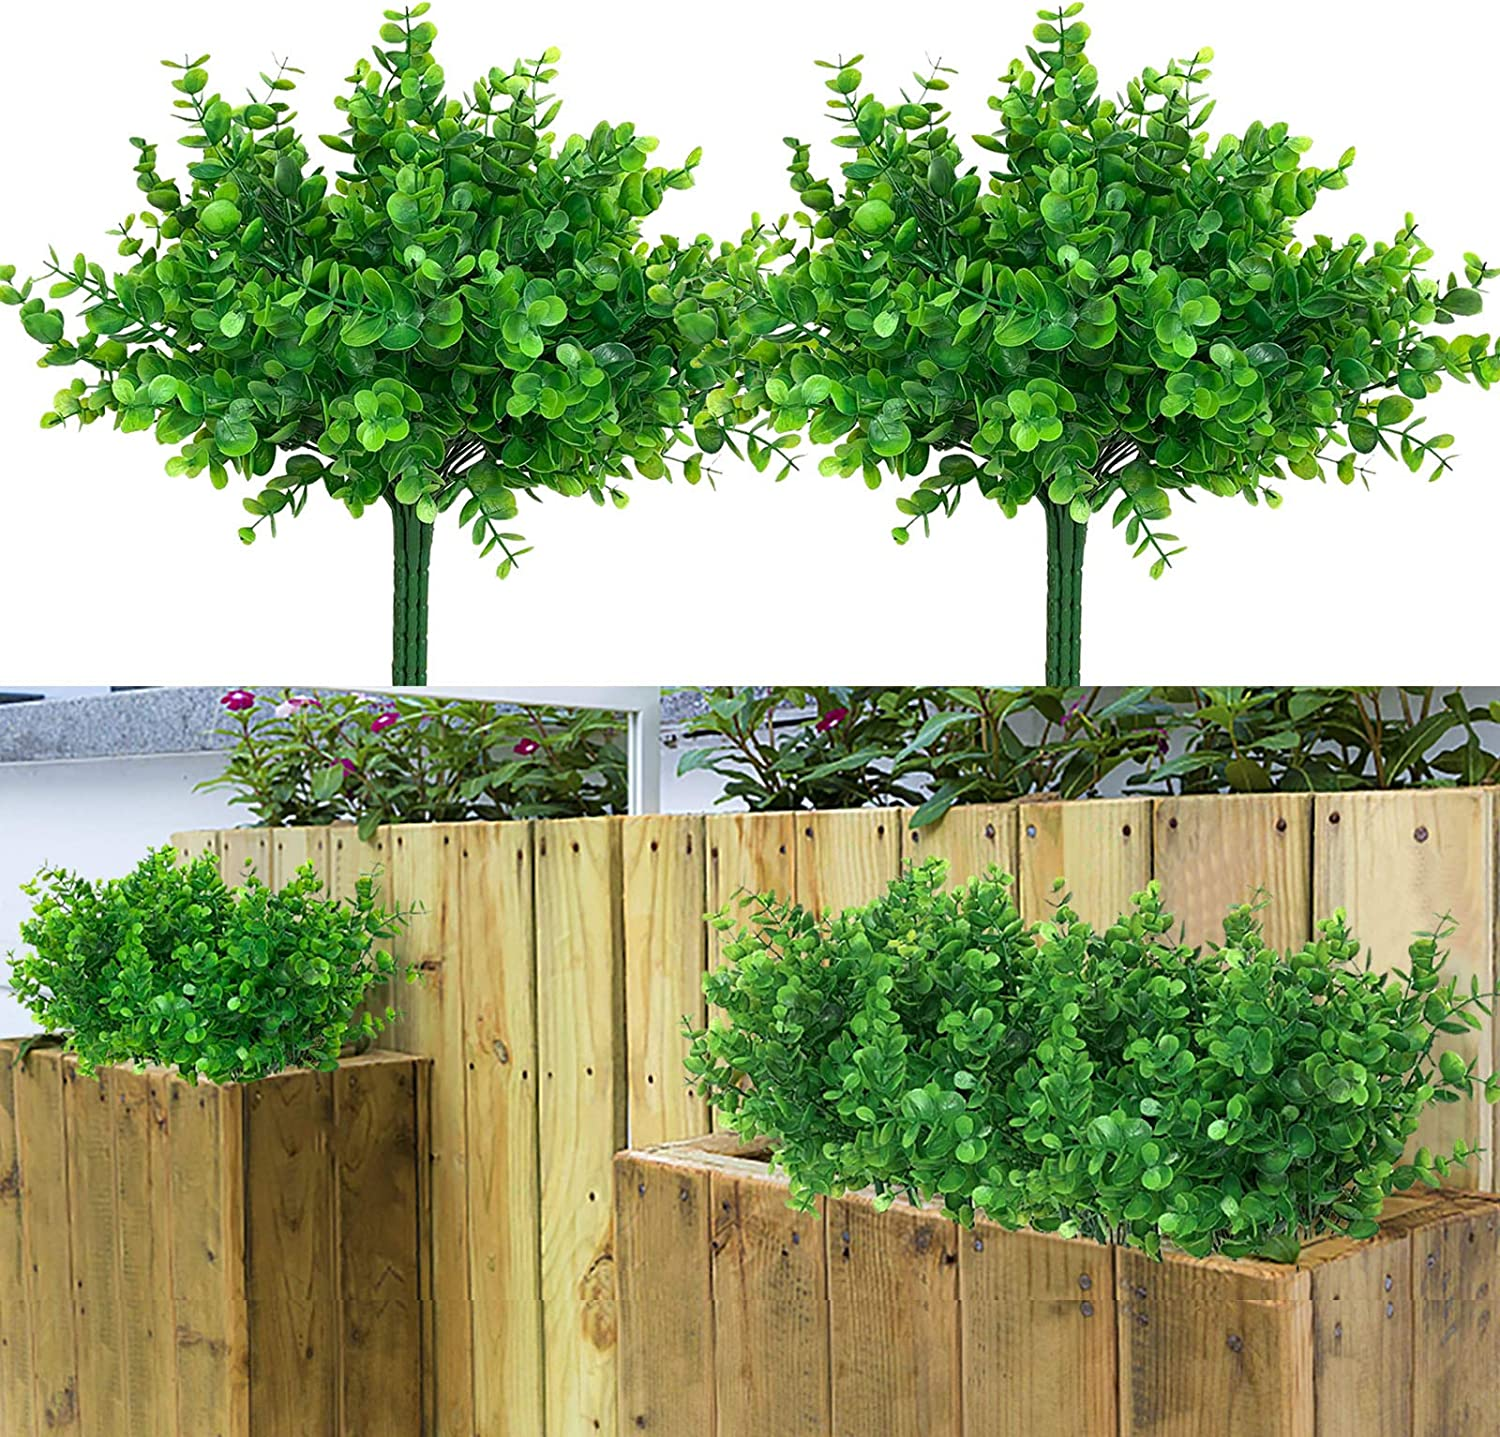 LAPONEE 8 Bundles Artificial Flowers UV Resistant Shrubs Plants, Faux Greenery for Indoor Outside Hanging Plants Décor to Make Your Garden Porch Window Box Home Wedding More Beauty (Green)